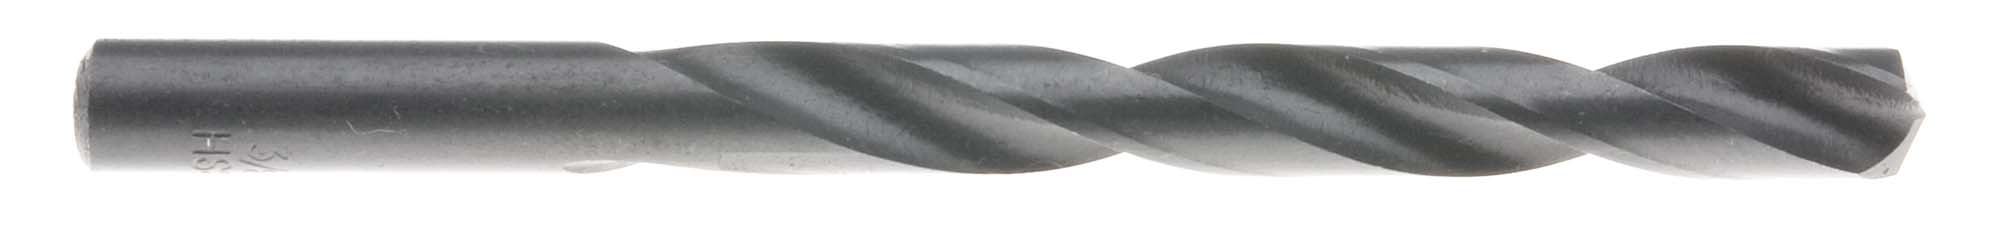 "A (.234"") Heavy Duty Split Point Jobber Drill Bit, High Speed Steel"